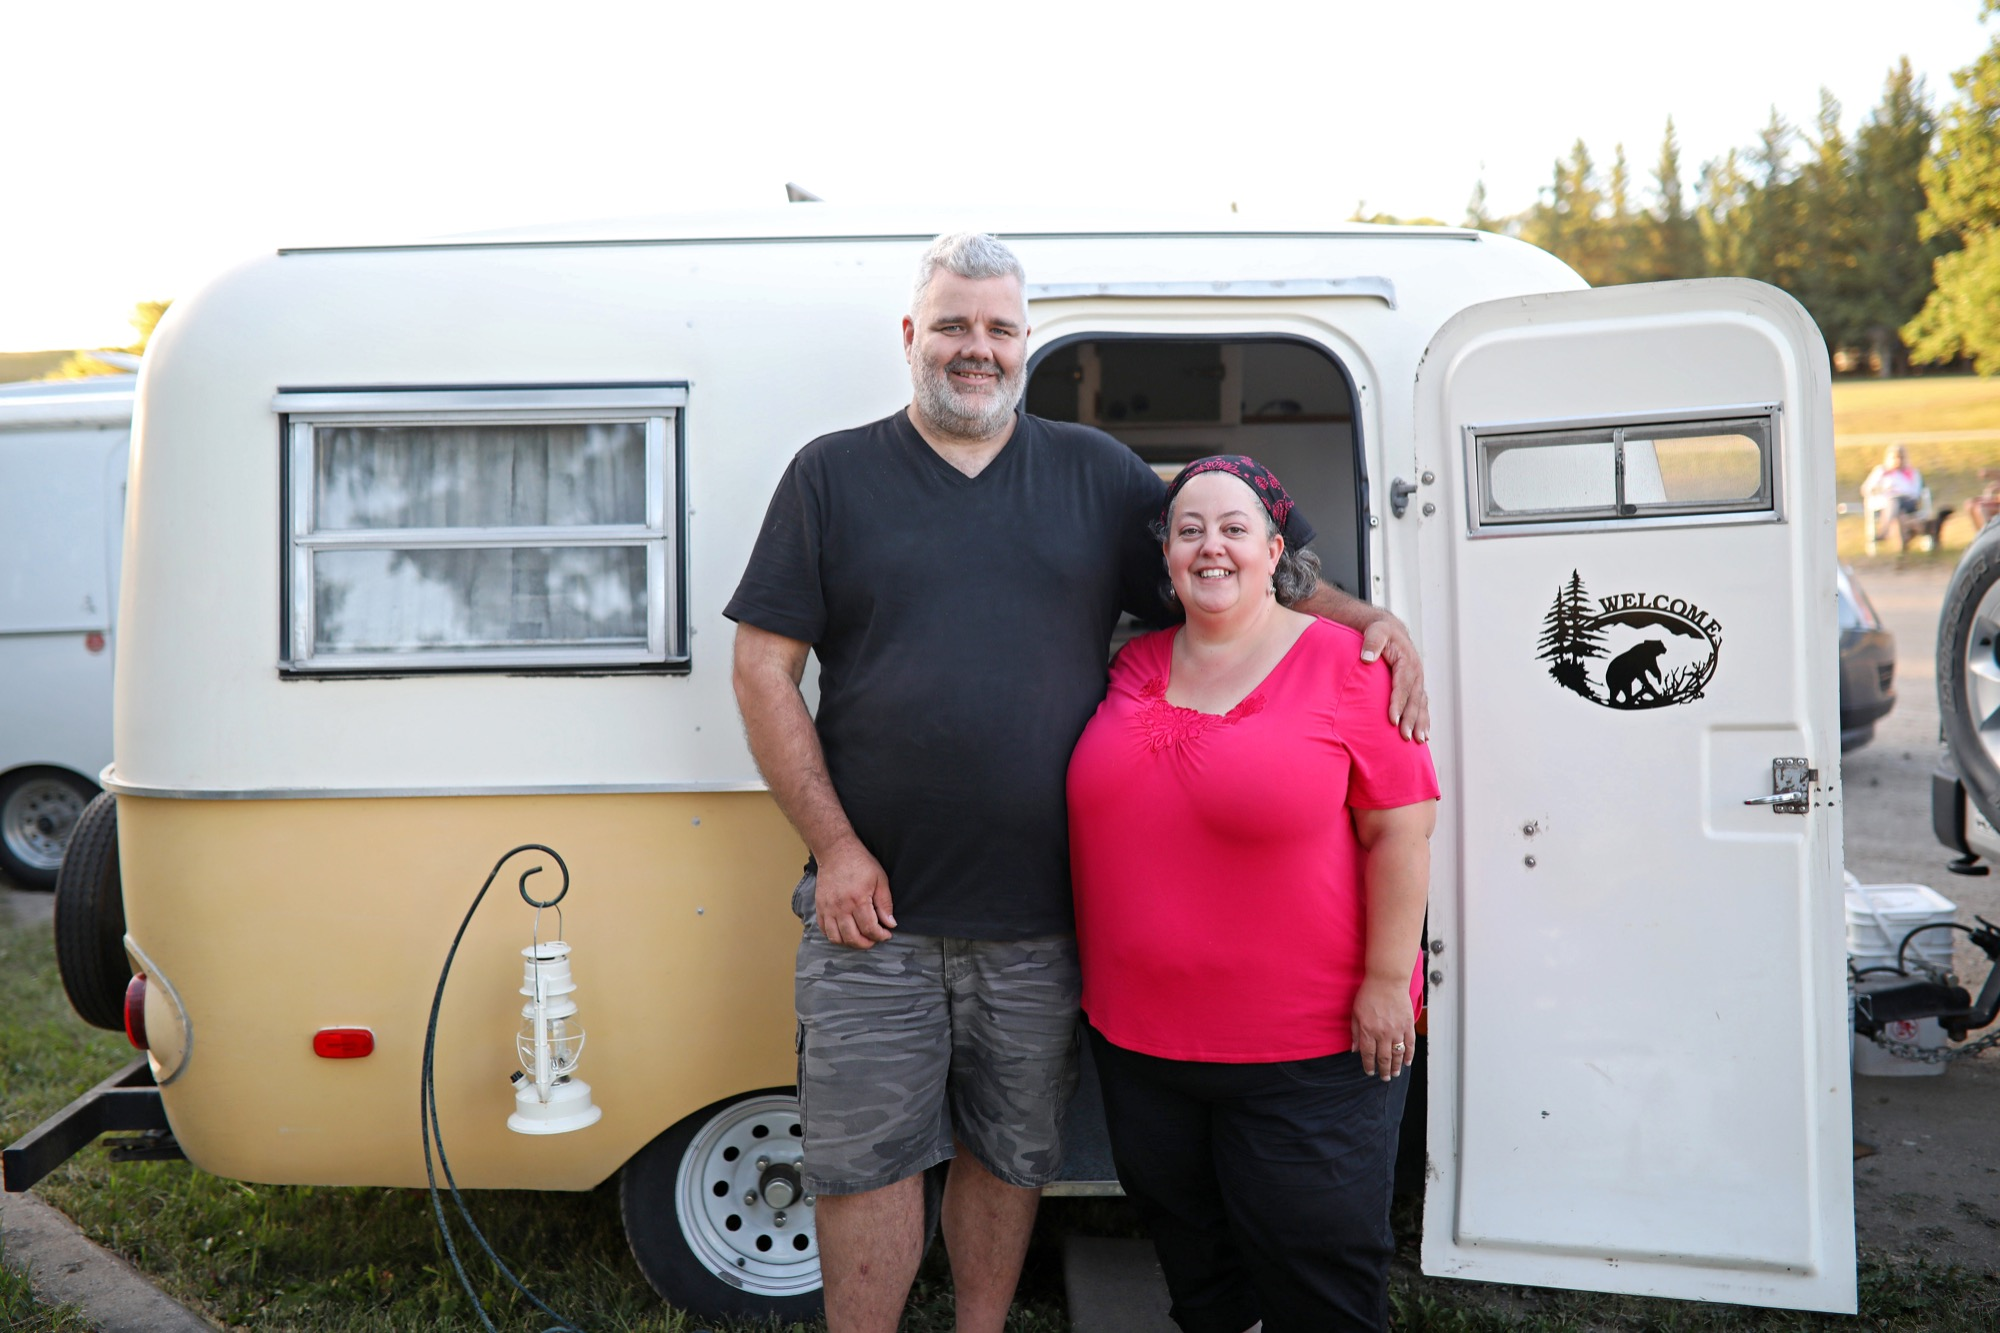 Shaun and Nicole Conkle of Victoria pose for a photo in front of their Boler camper at Grand Valley Campground just west of Brandon on Tuesday evening. A caravan of Boler enthusiasts headed east to Winnipeg from western Canada for the Boler 50th Anniversary celebration stopped in and around the Wheat City for the night on Tuesday. The Boler gathering in Winnipeg began Wednesday and is attracting Boler enthusiasts from all over North America.